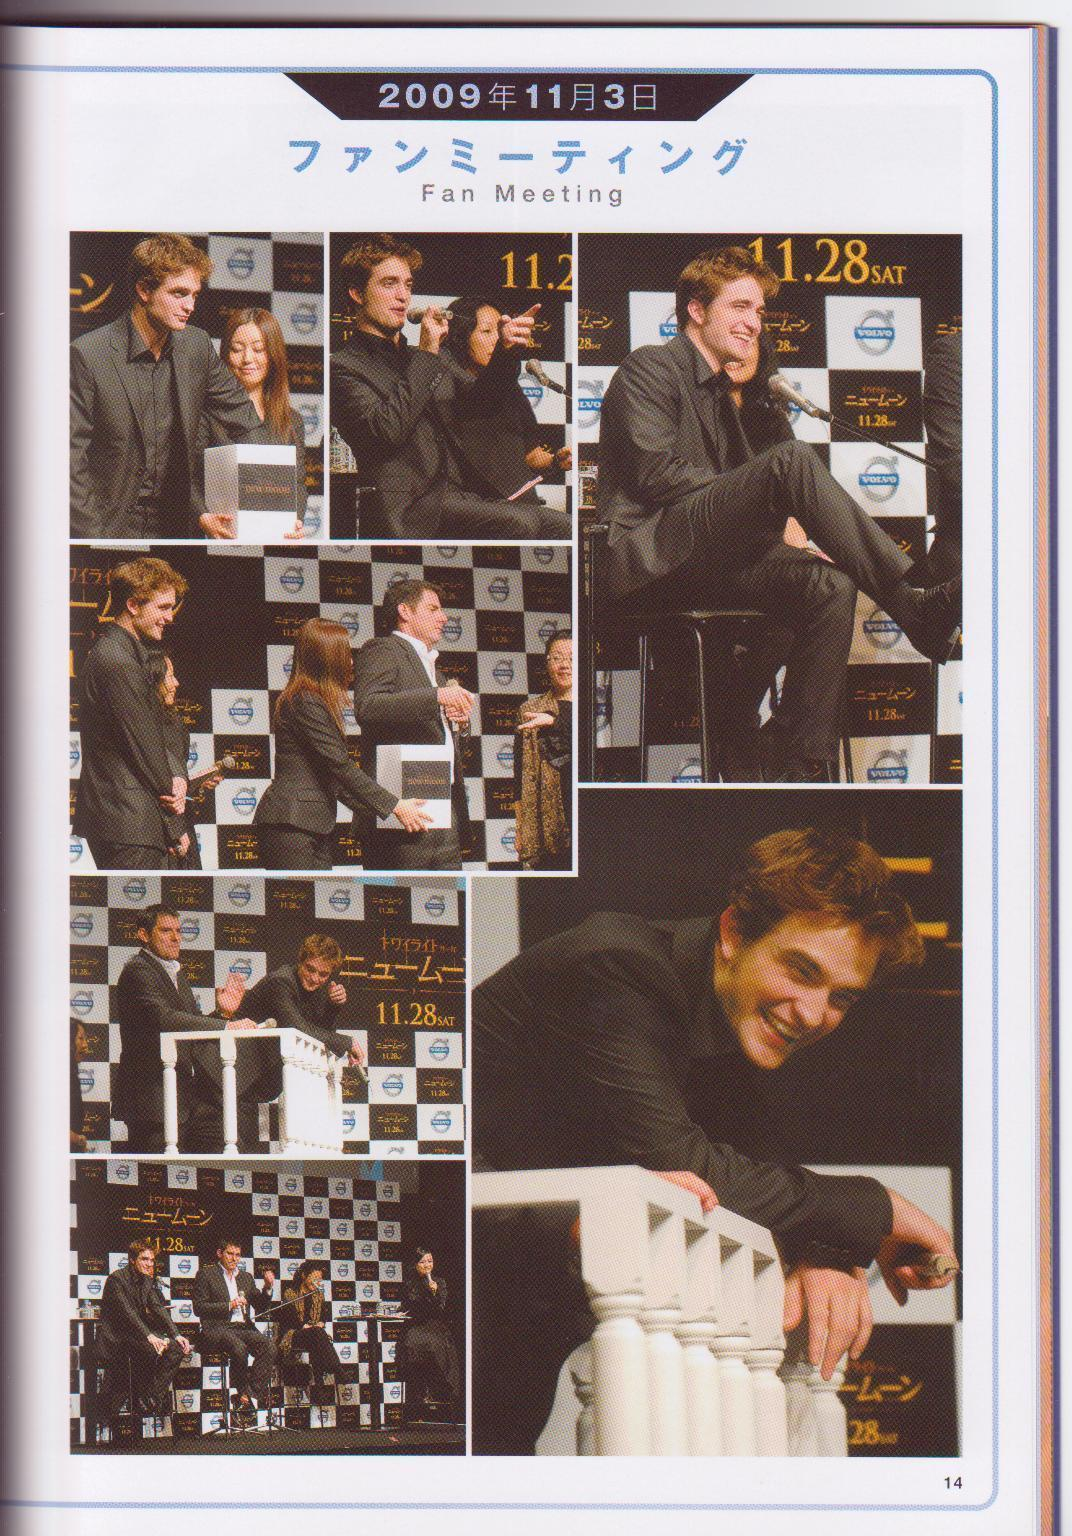 zaidi New Pictures Of Robert Pattinson From Japan